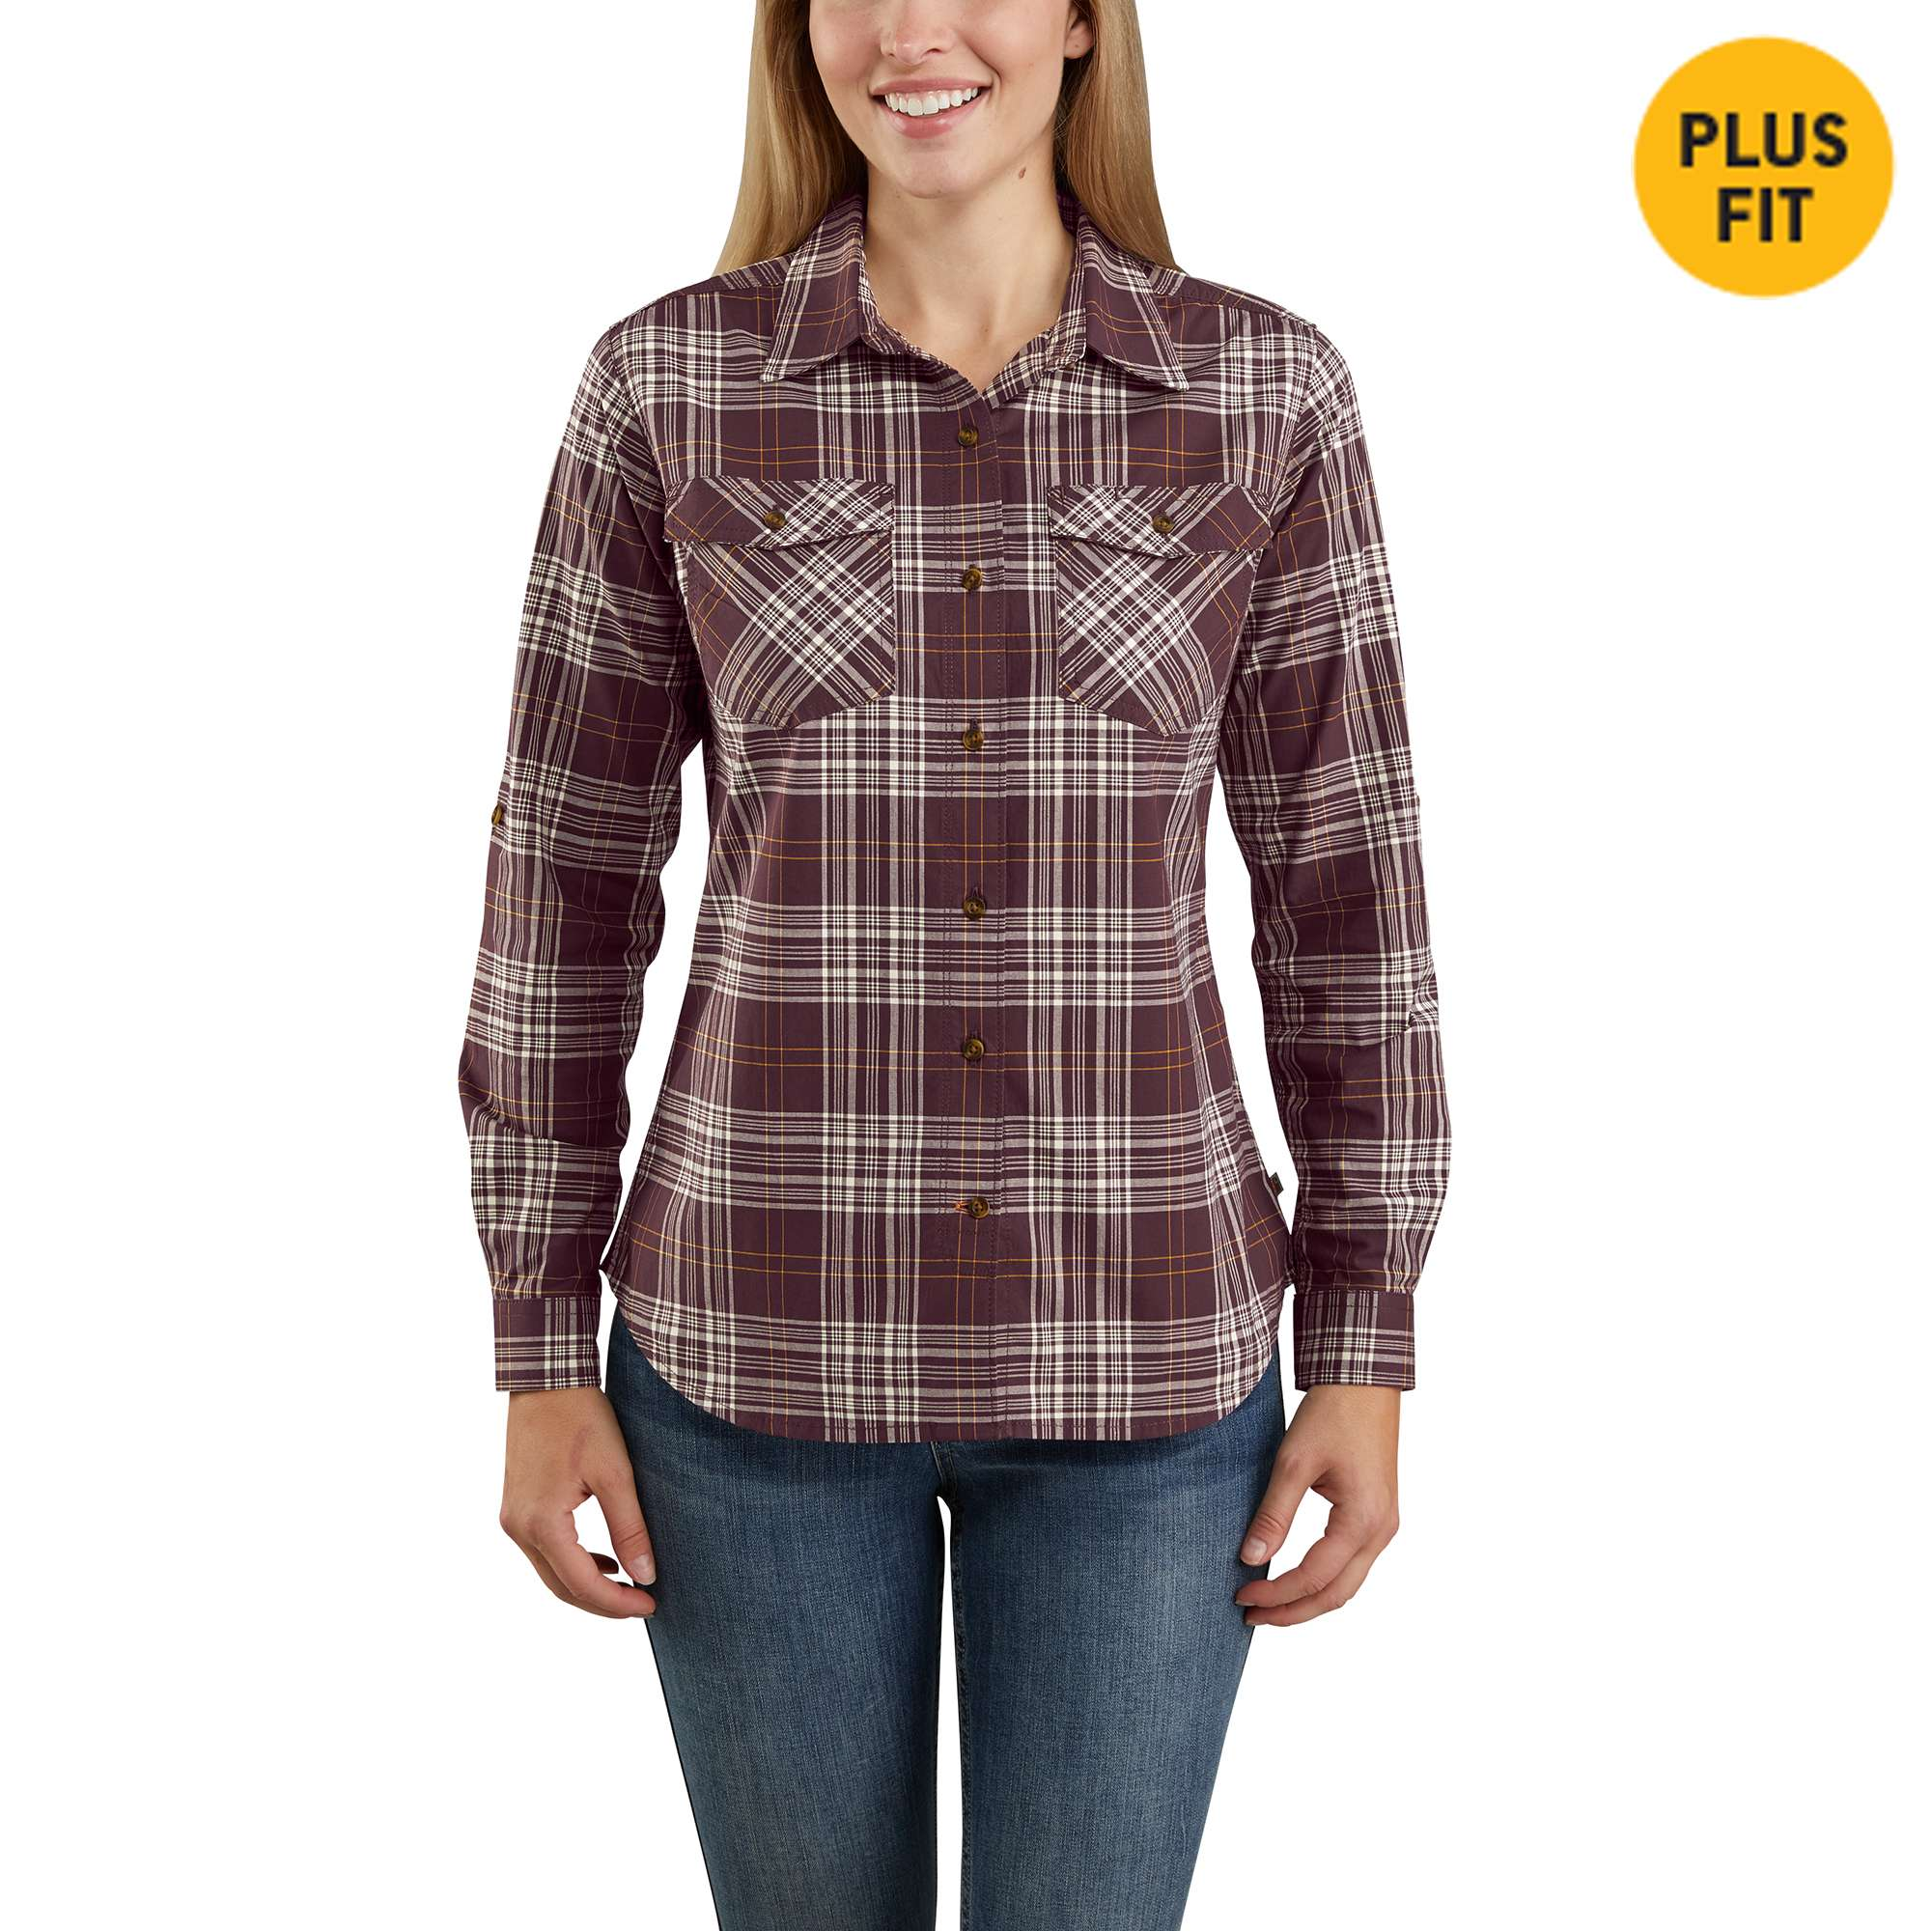 Carhartt Rugged Flex Slightly Fitted Long-Sleeve Plaid Shirt